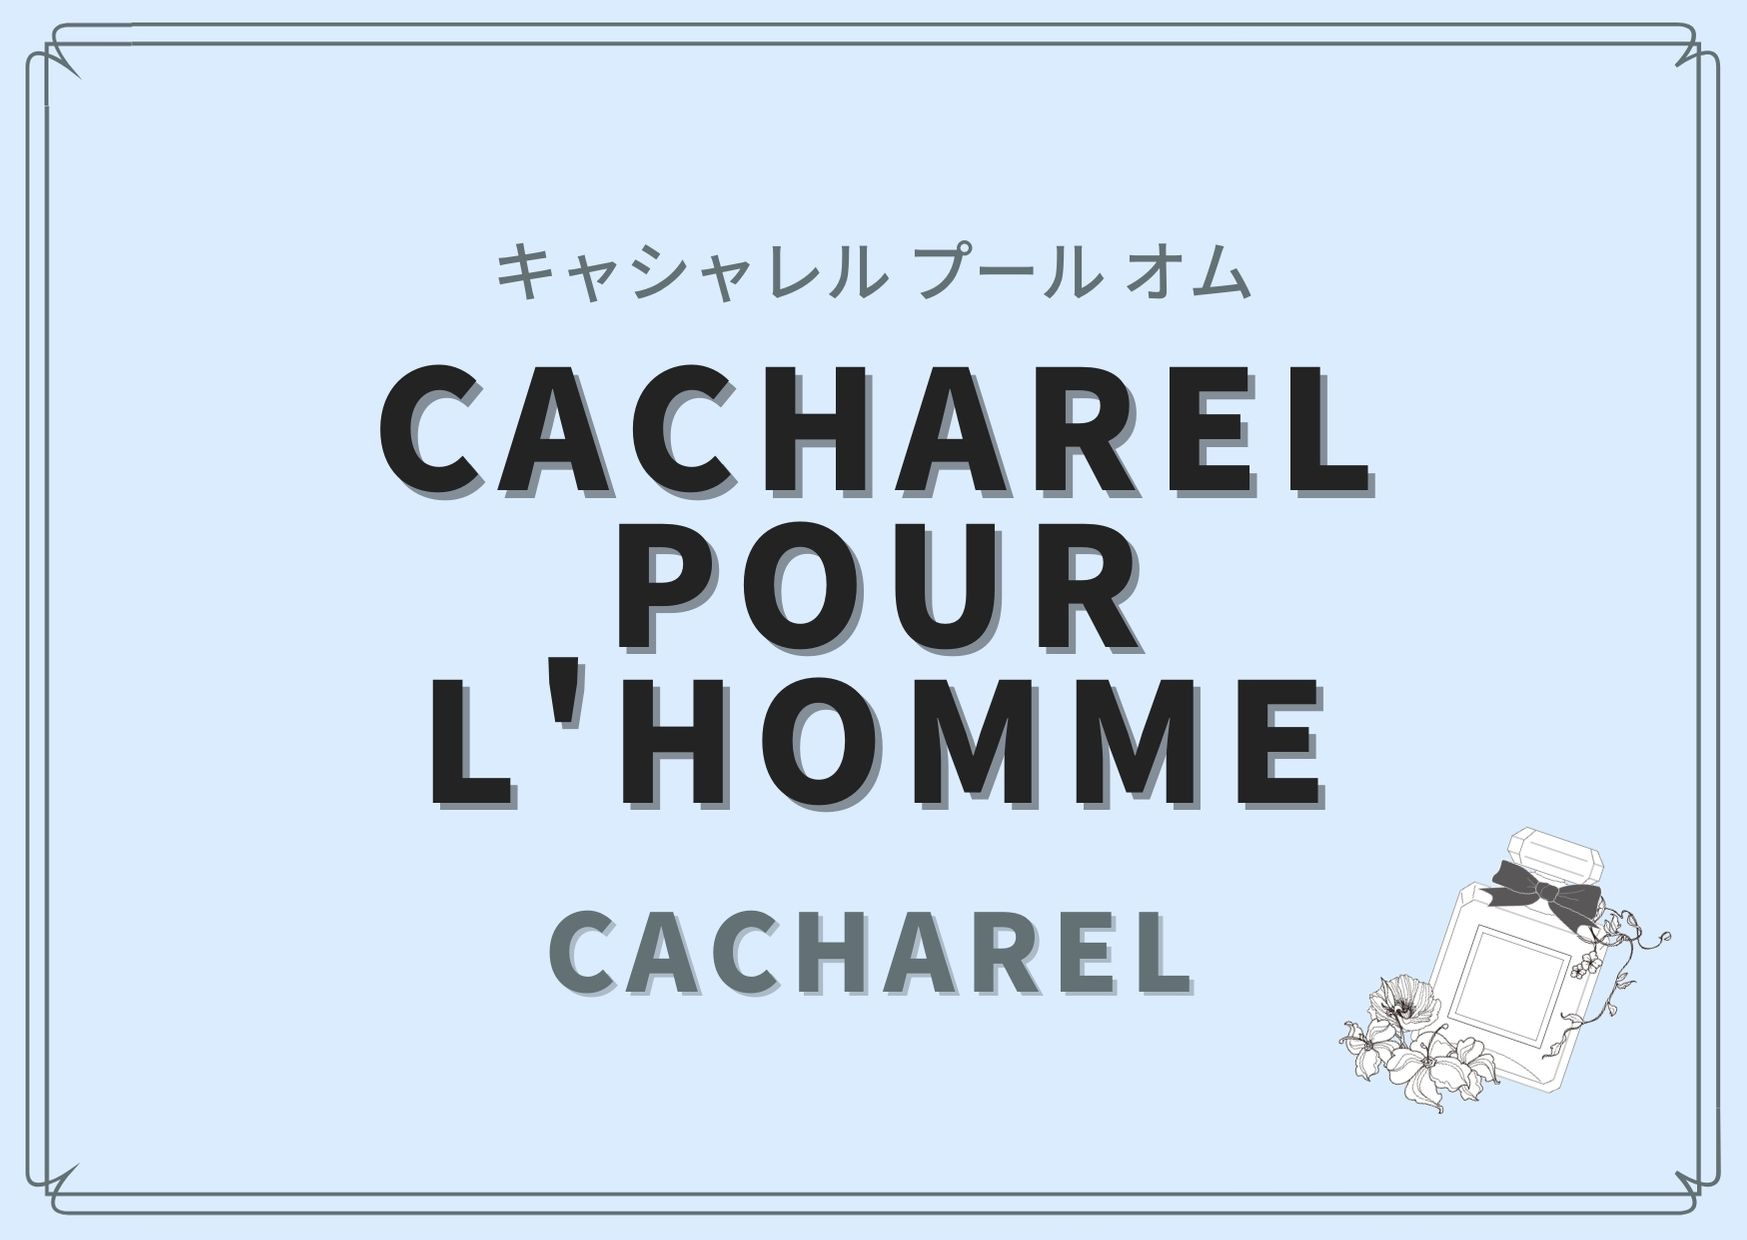 CACHAREL POUR L'HOMME(キャシャレル プール オム) / cacharel(キャシャレル)